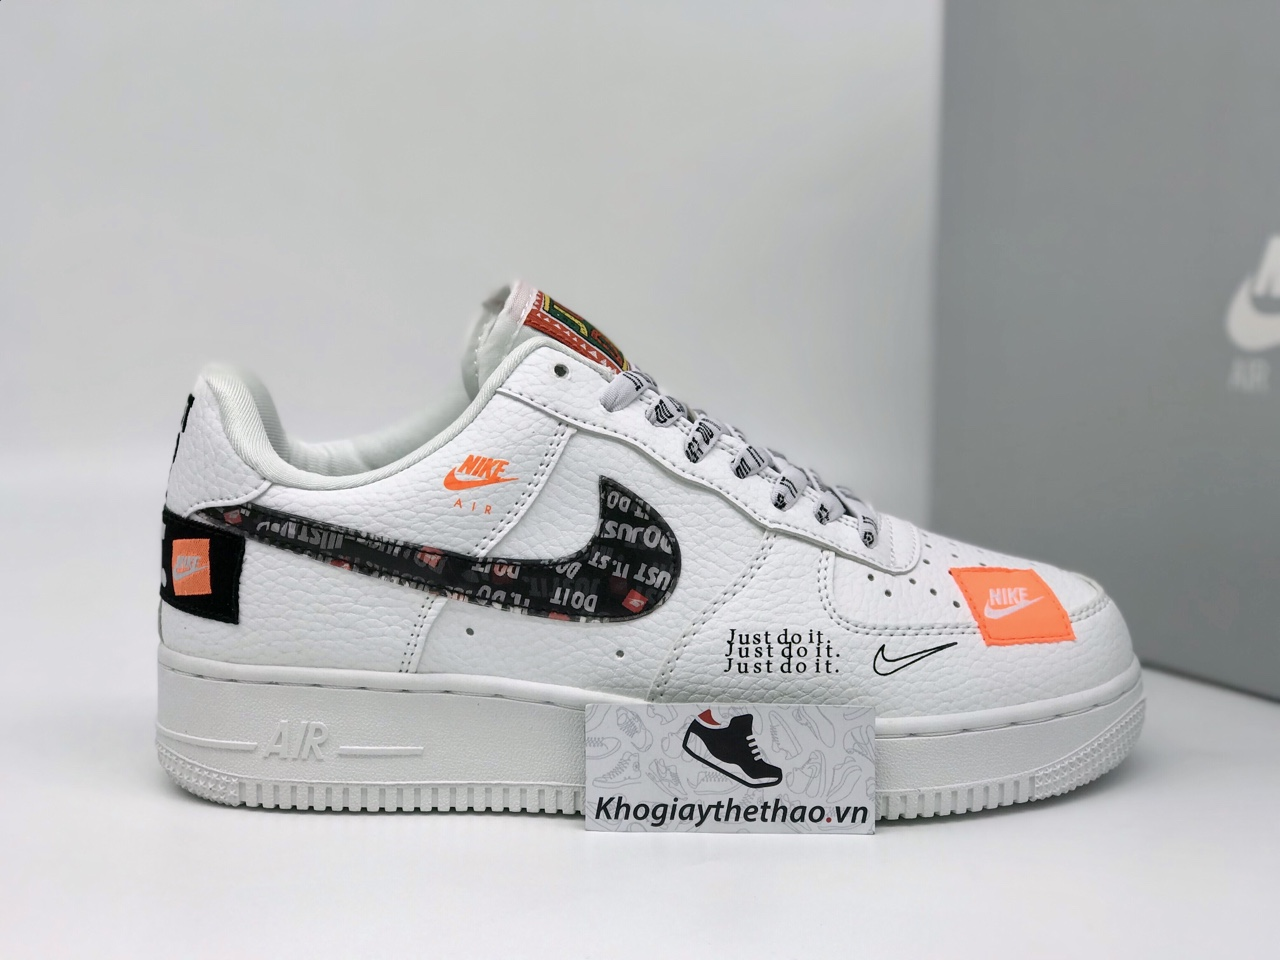 Giày Nike Air Force 1 Just do it cổ thấp rep